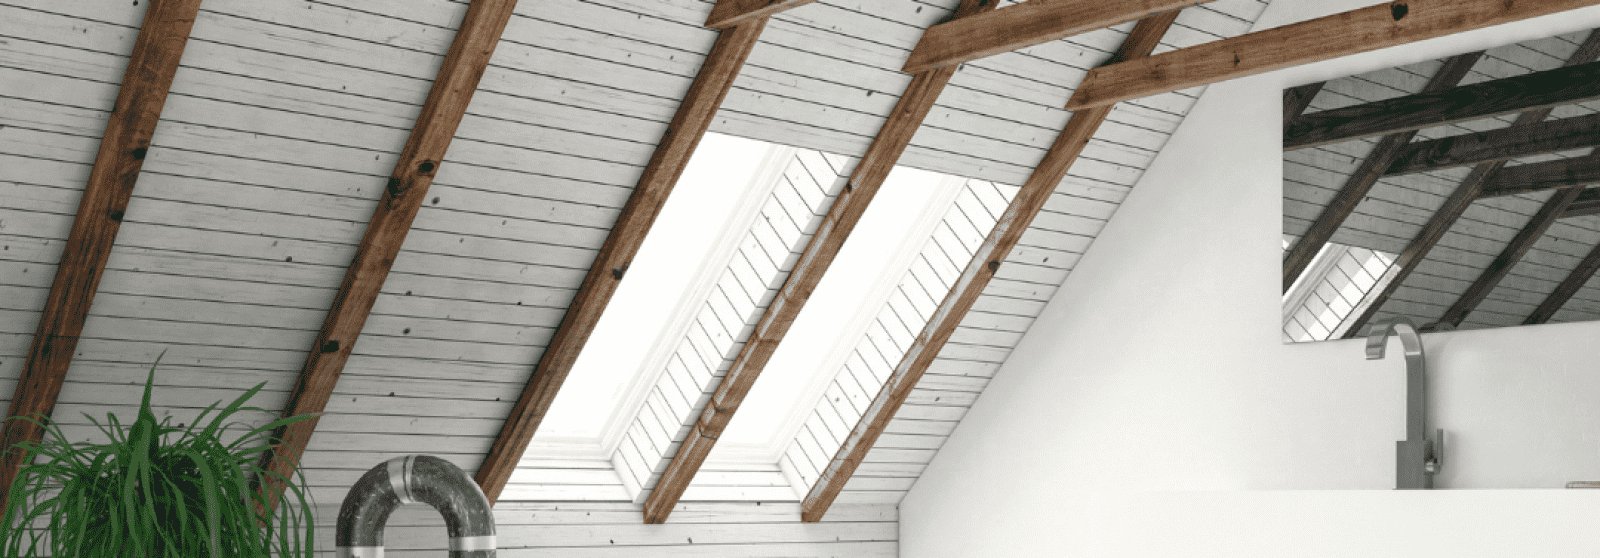 4 Reasons to Use Quality Insulation in Your Attic